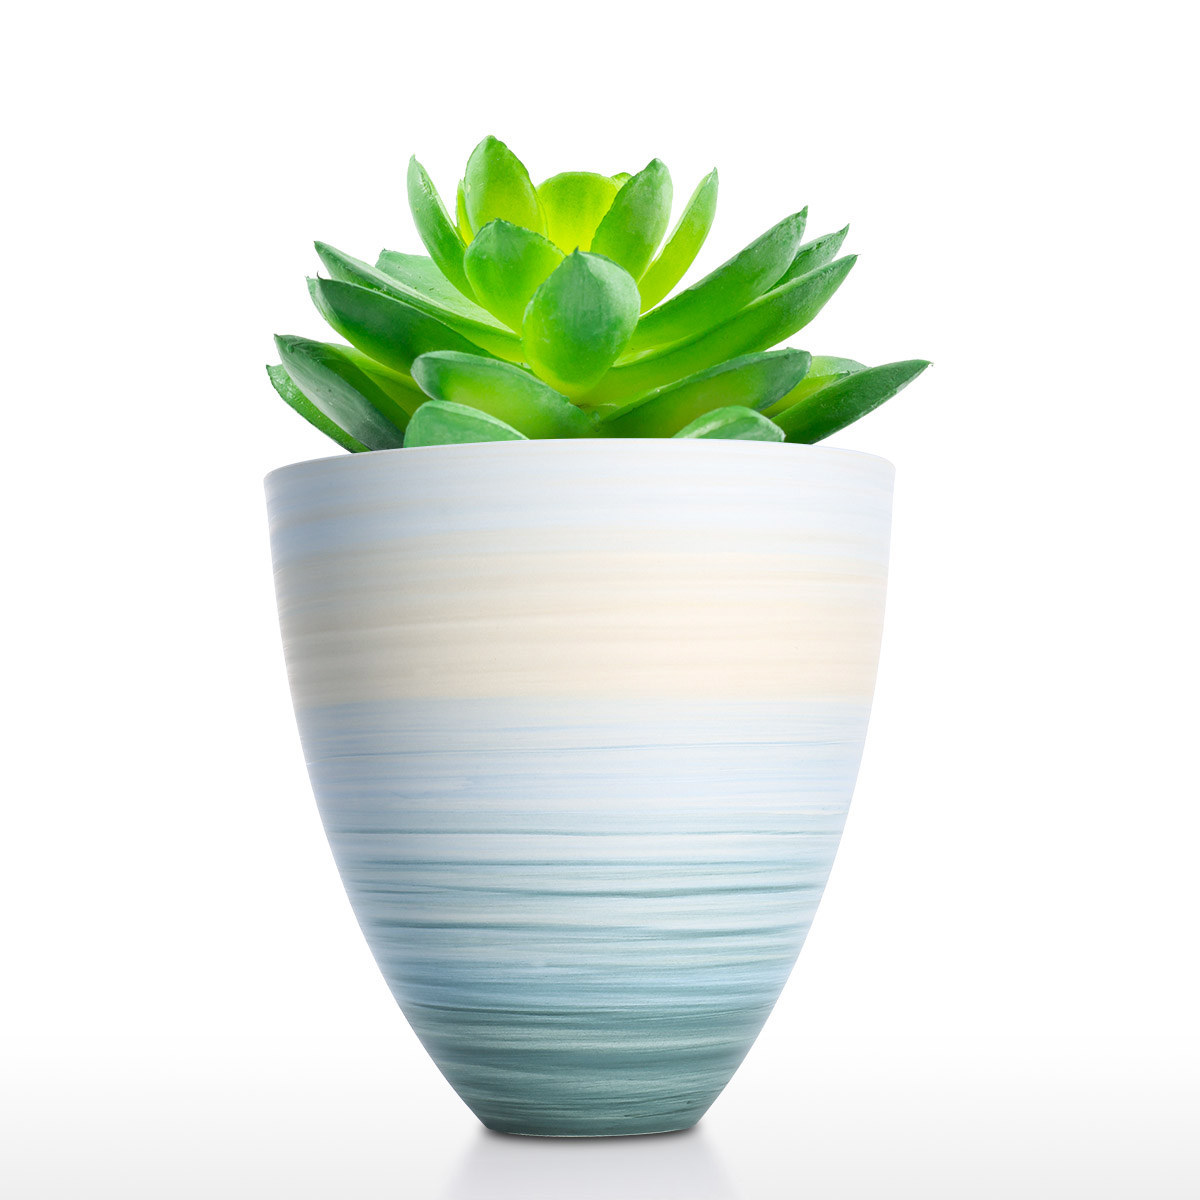 225 & Best and cheap blue color Ceramic Flower Vase Blue Vase Home Decor Vase Table Centerpieces Vase Decorative Centerpiece for Home or Wedding - ...